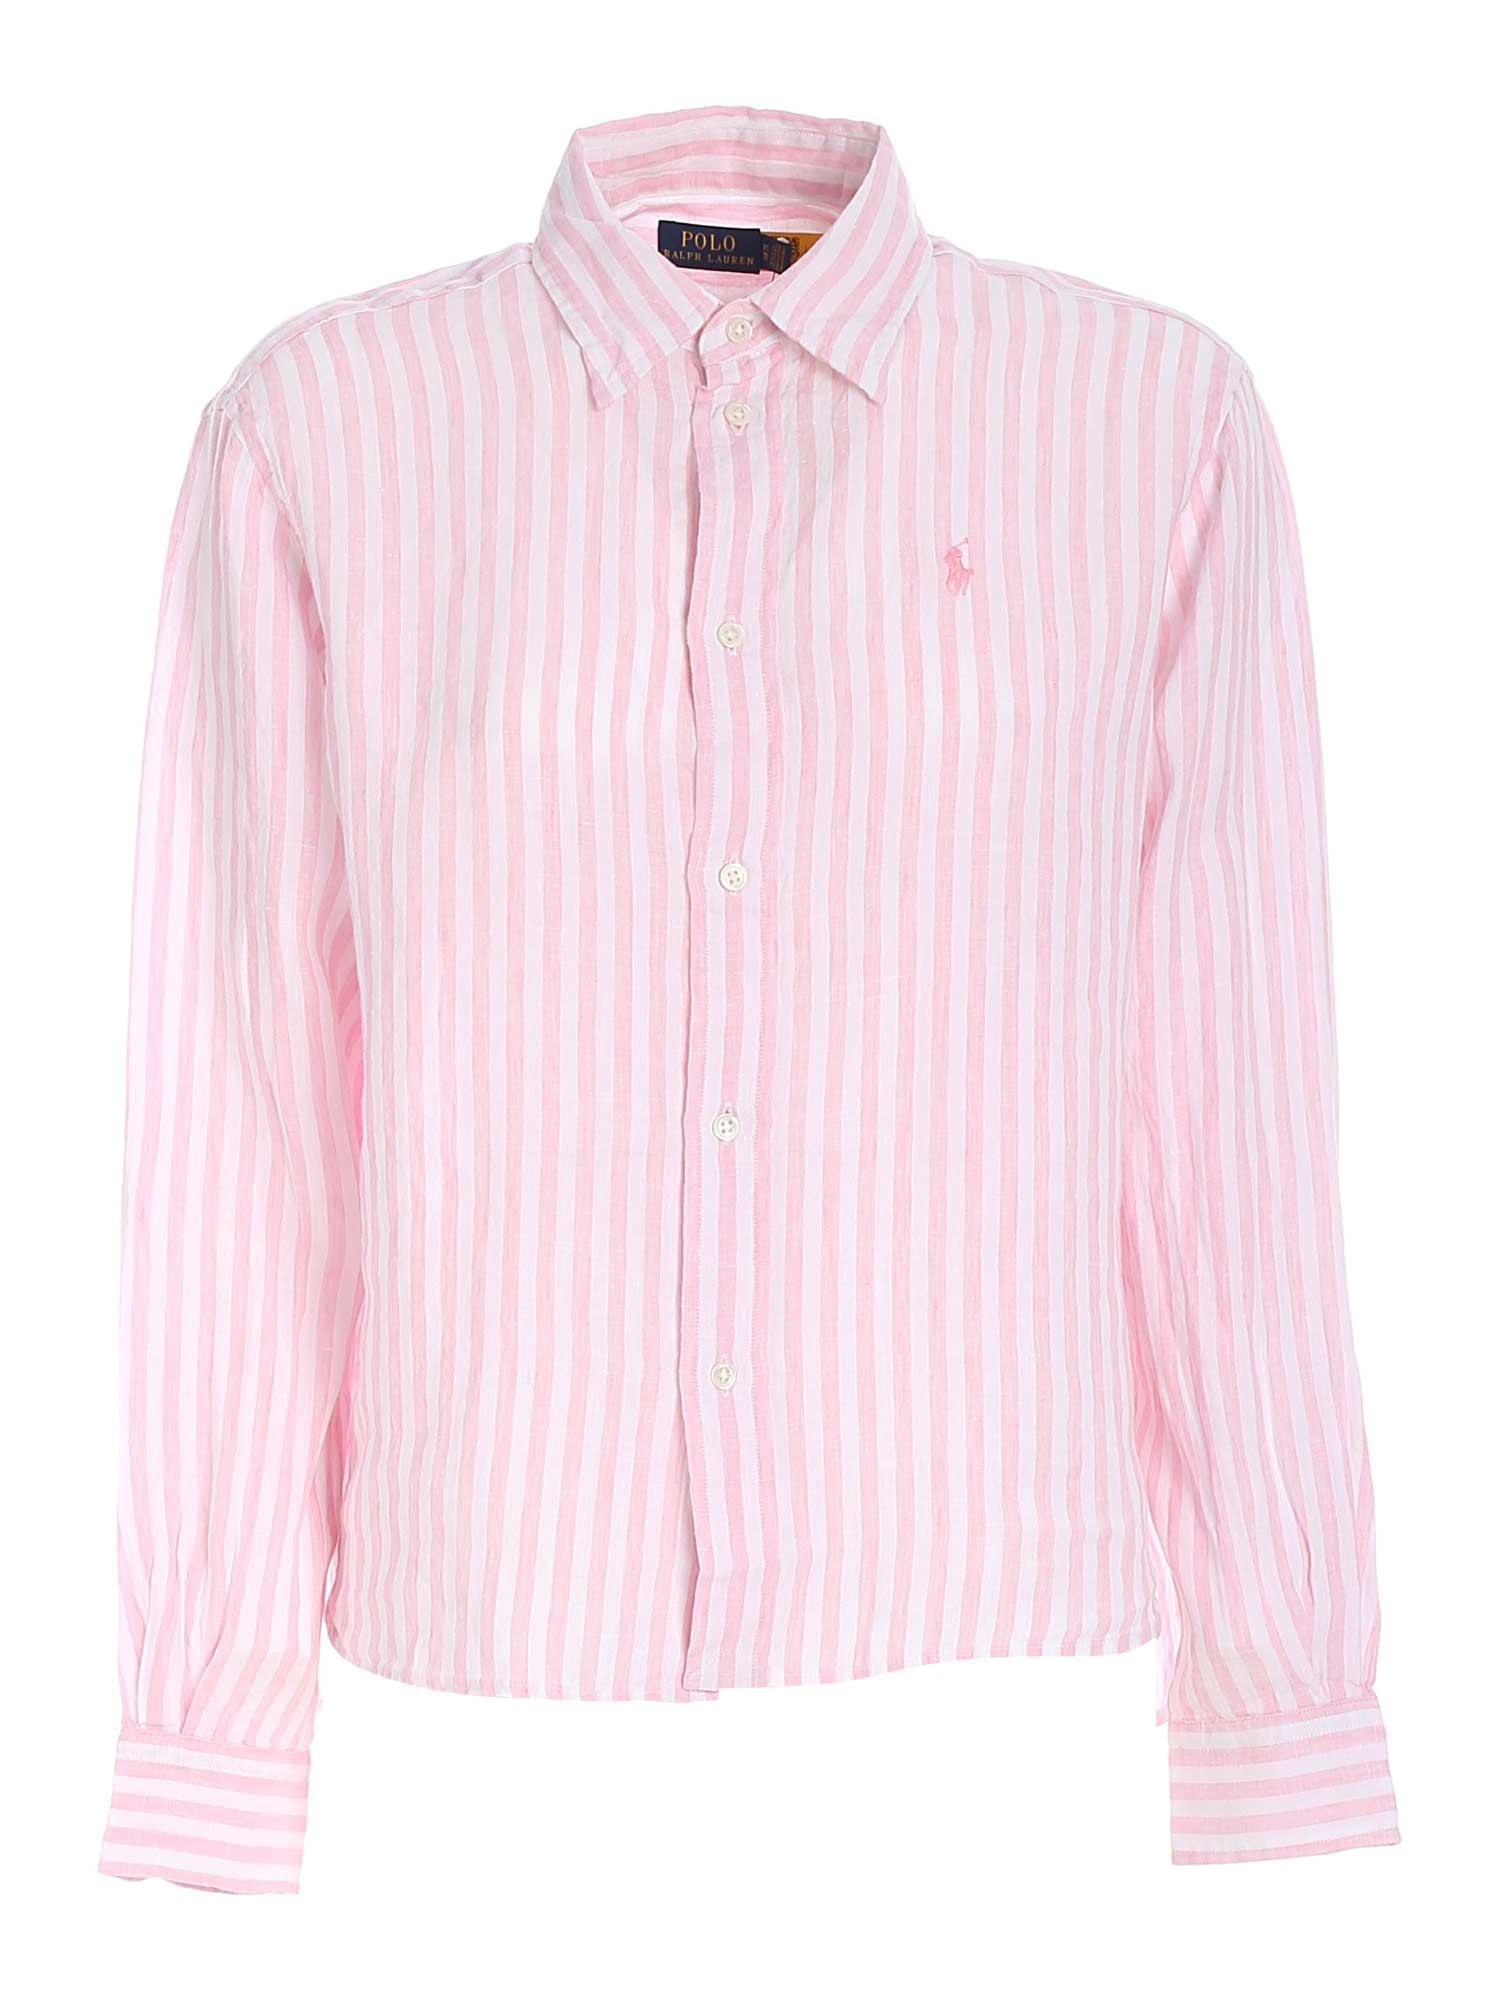 Polo Ralph Lauren Linens LOGO STRIPED SHIRT IN PINK AND WHITE